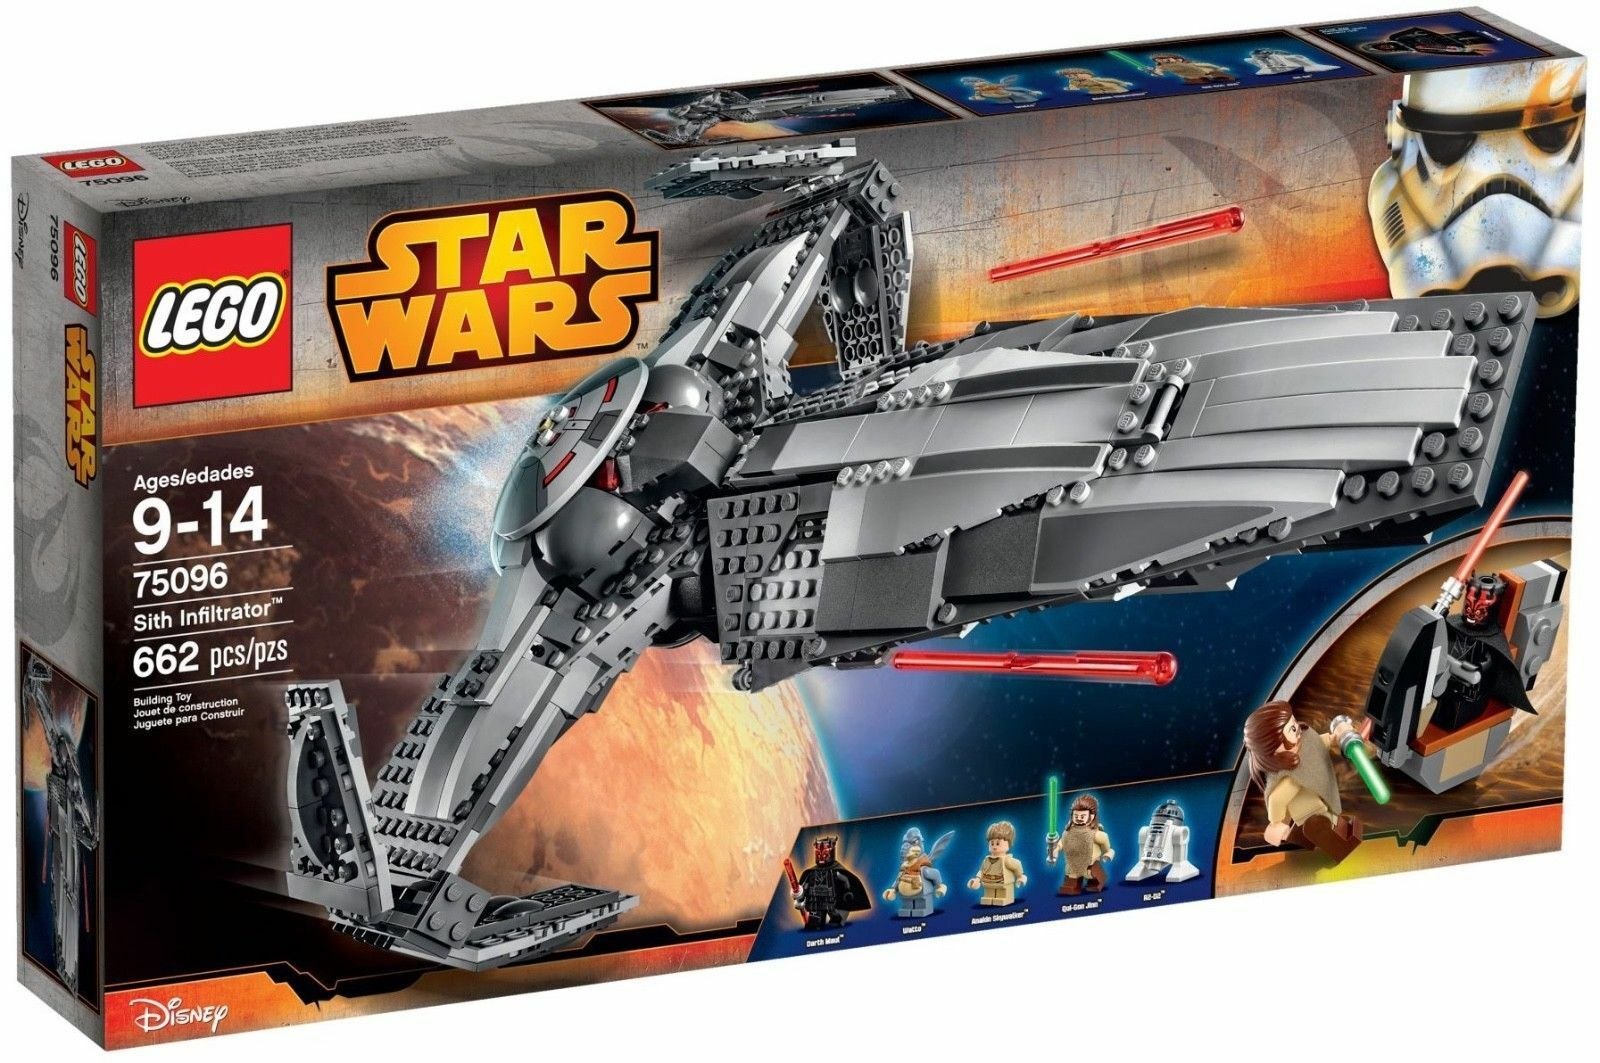 LEGO Star Wars Wars Wars 75096 Sith Infiltrator ToysRUs Exclusive Episode 1 Phantom Menace 39886c